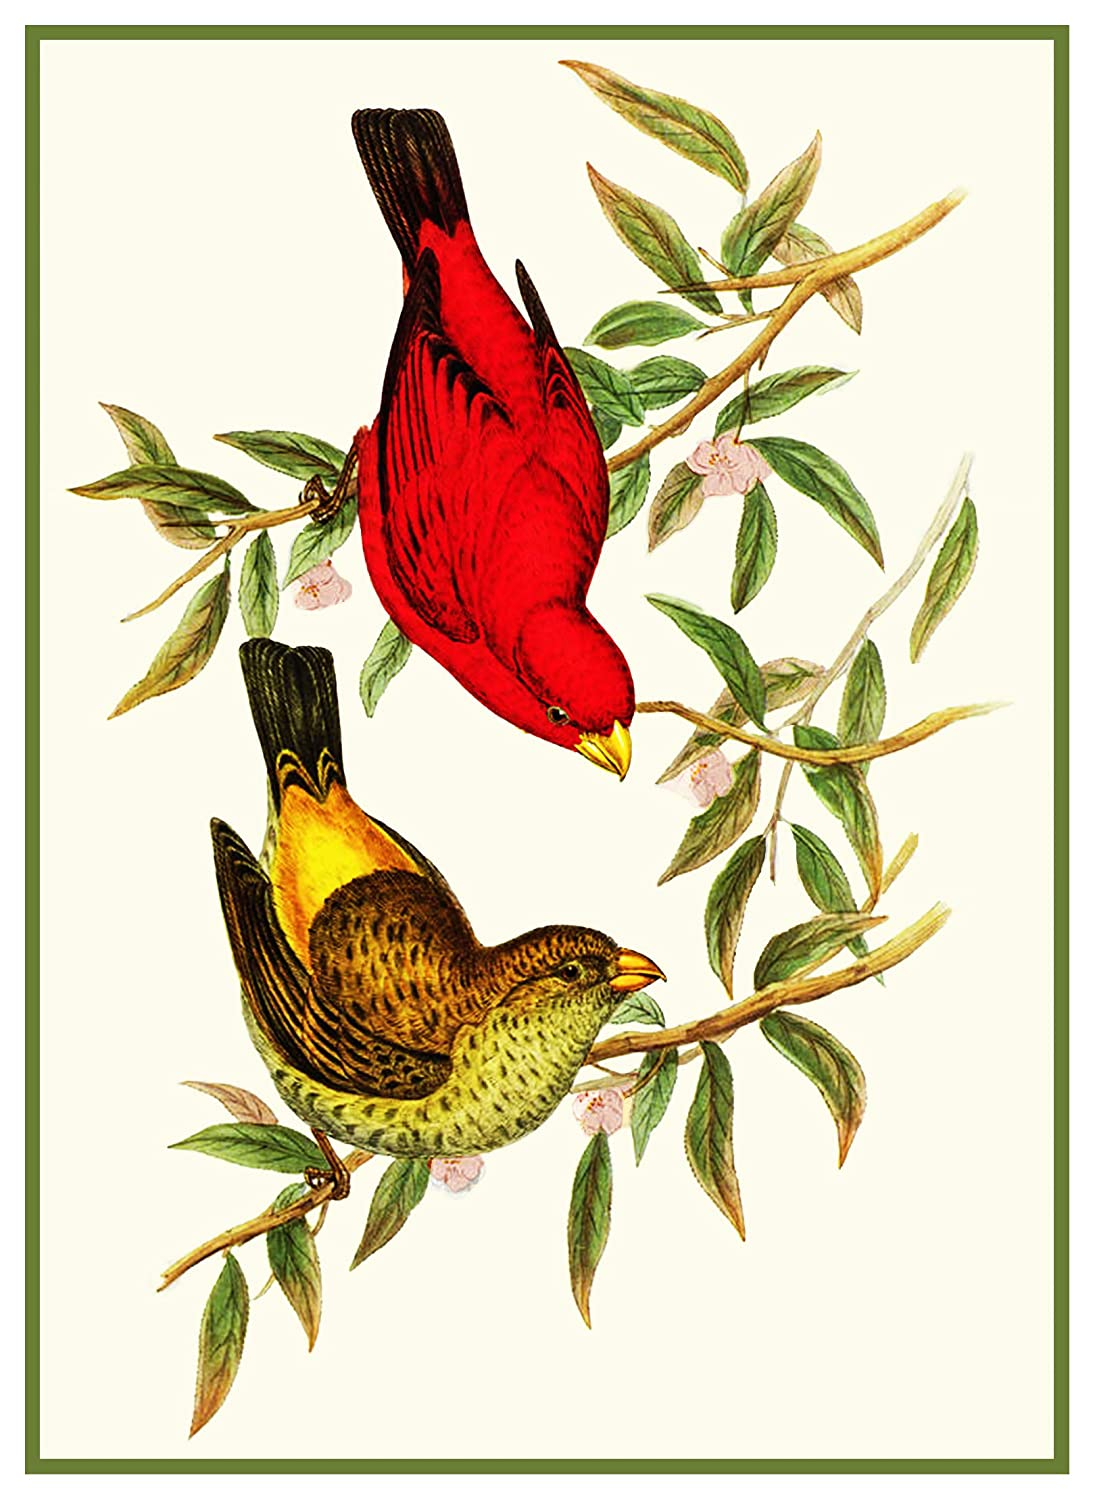 Orenco Originals Scarlet Finches by Naturalist Gould Birds Counted Cross Stitch Pattern